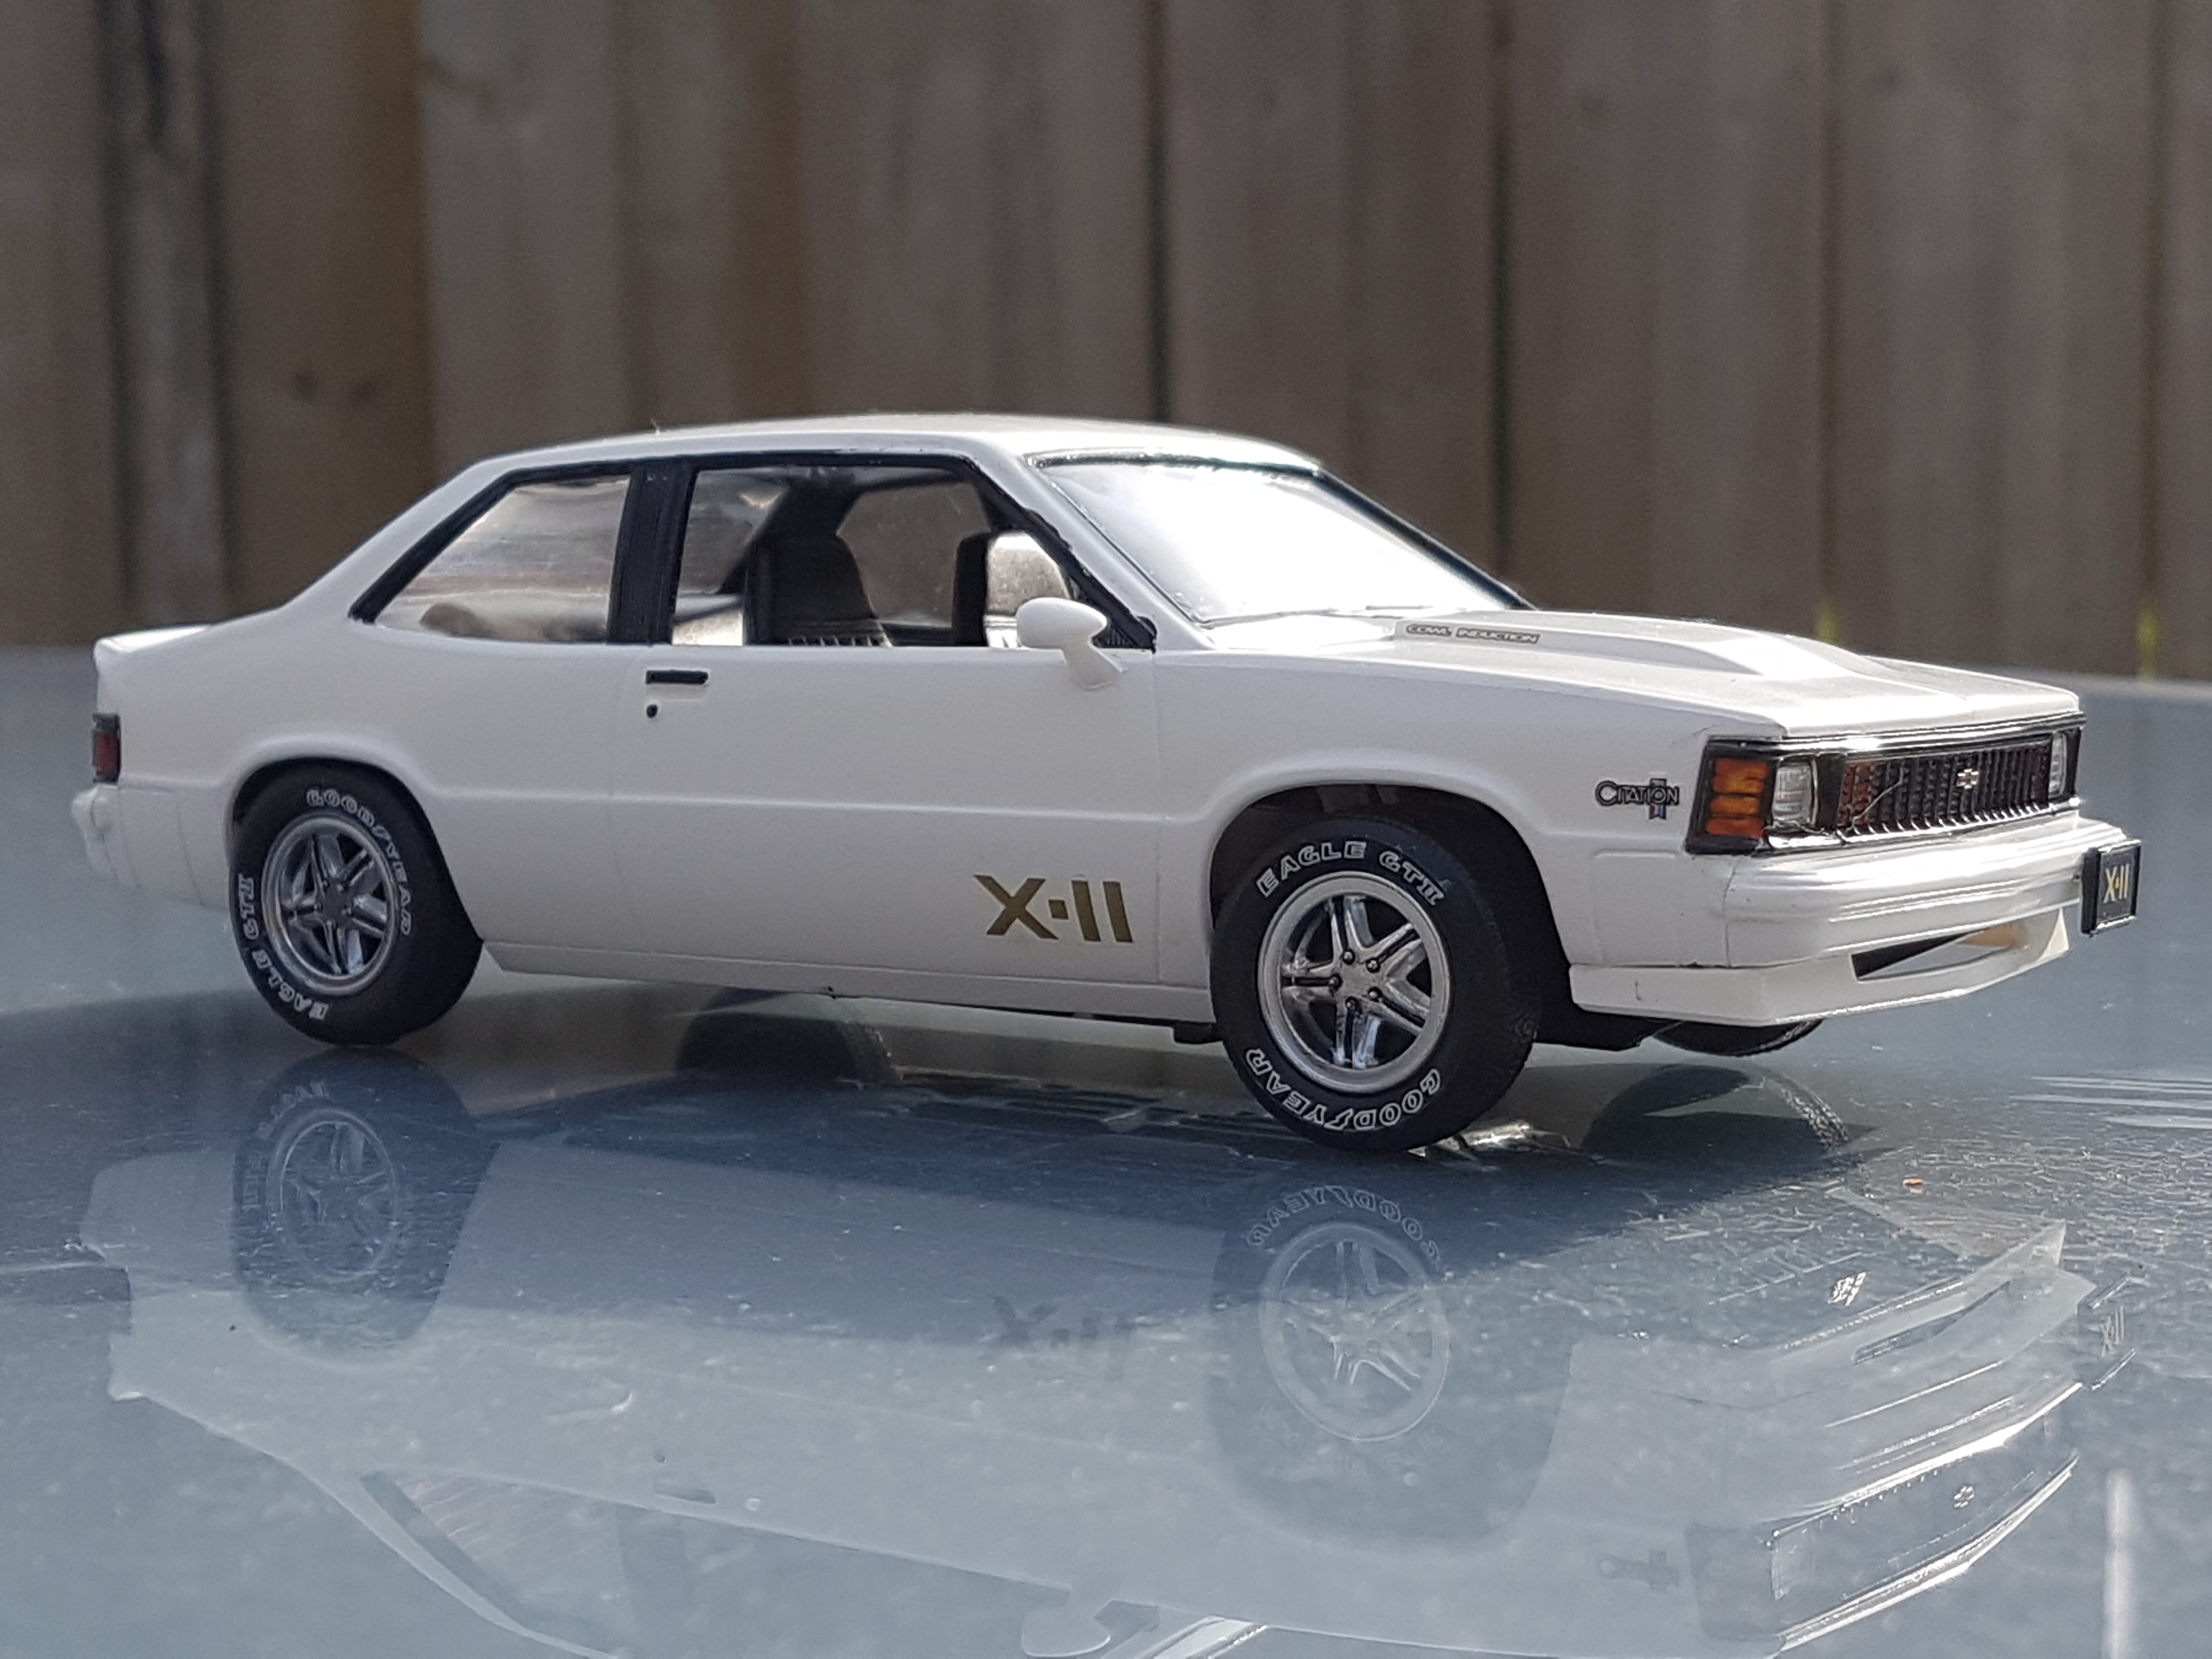 1983 Chevrolet Citation X-11 – Revell | Rays Kits